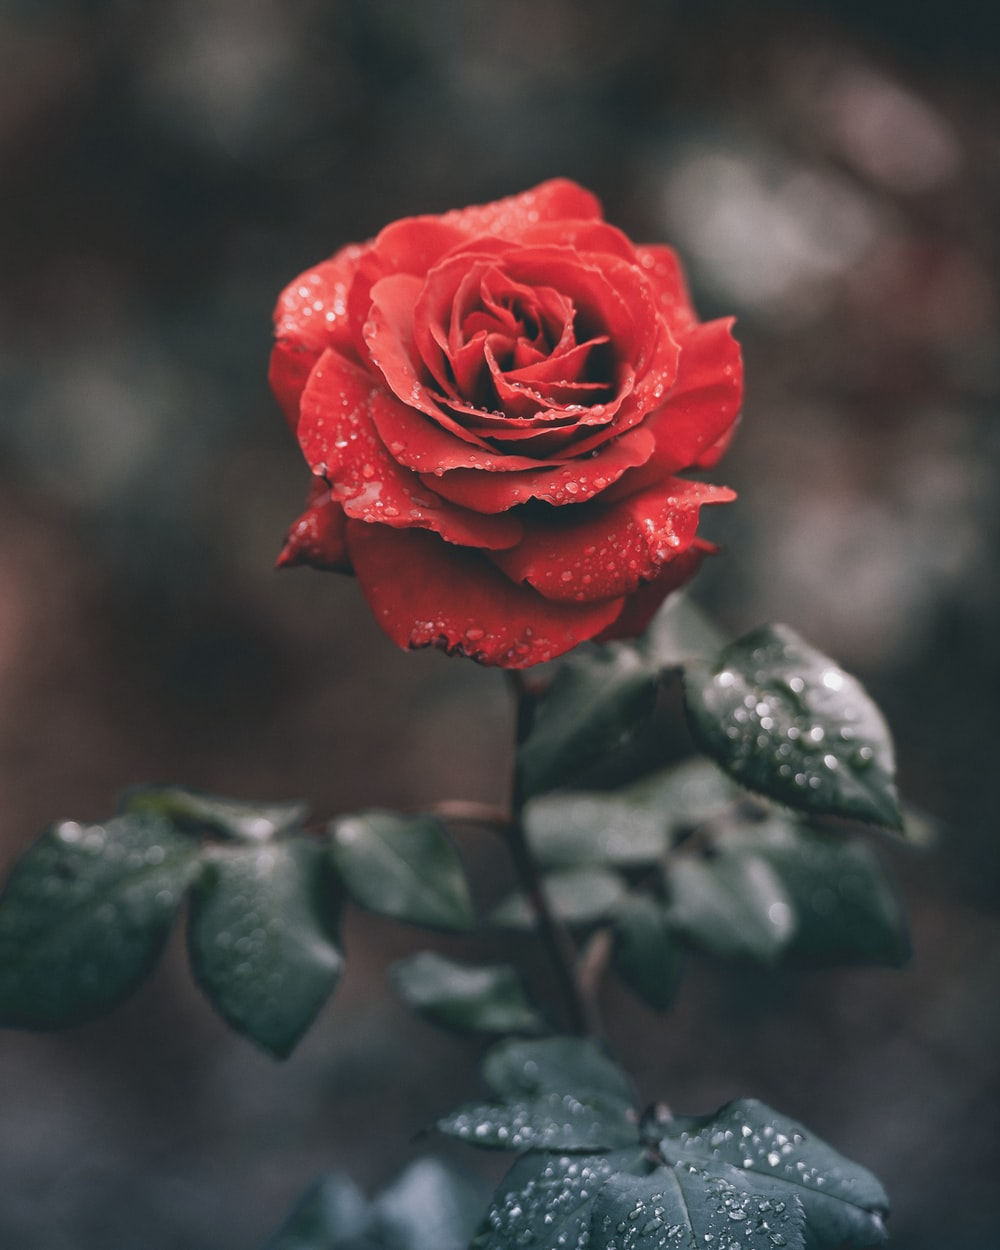 red rose with droplets